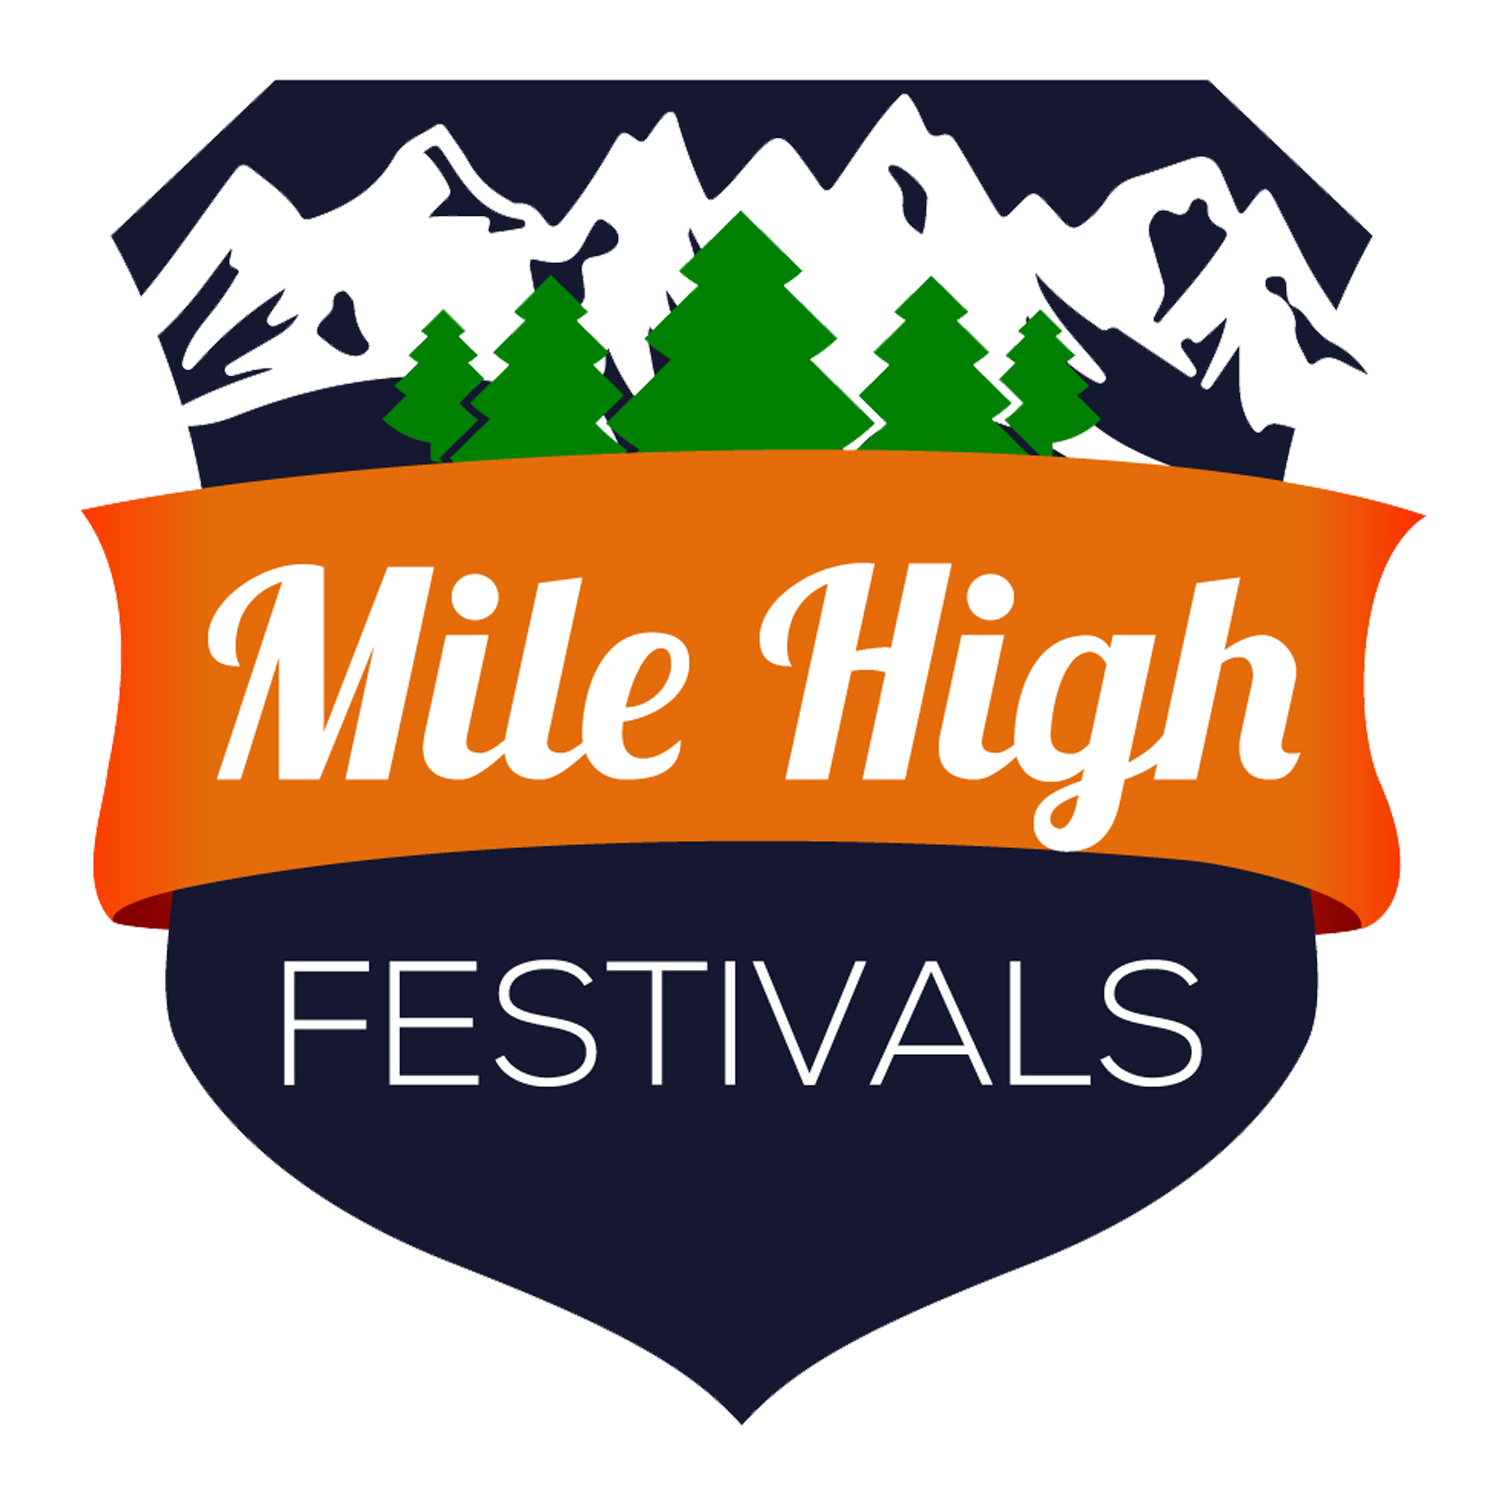 Mile High Festivals